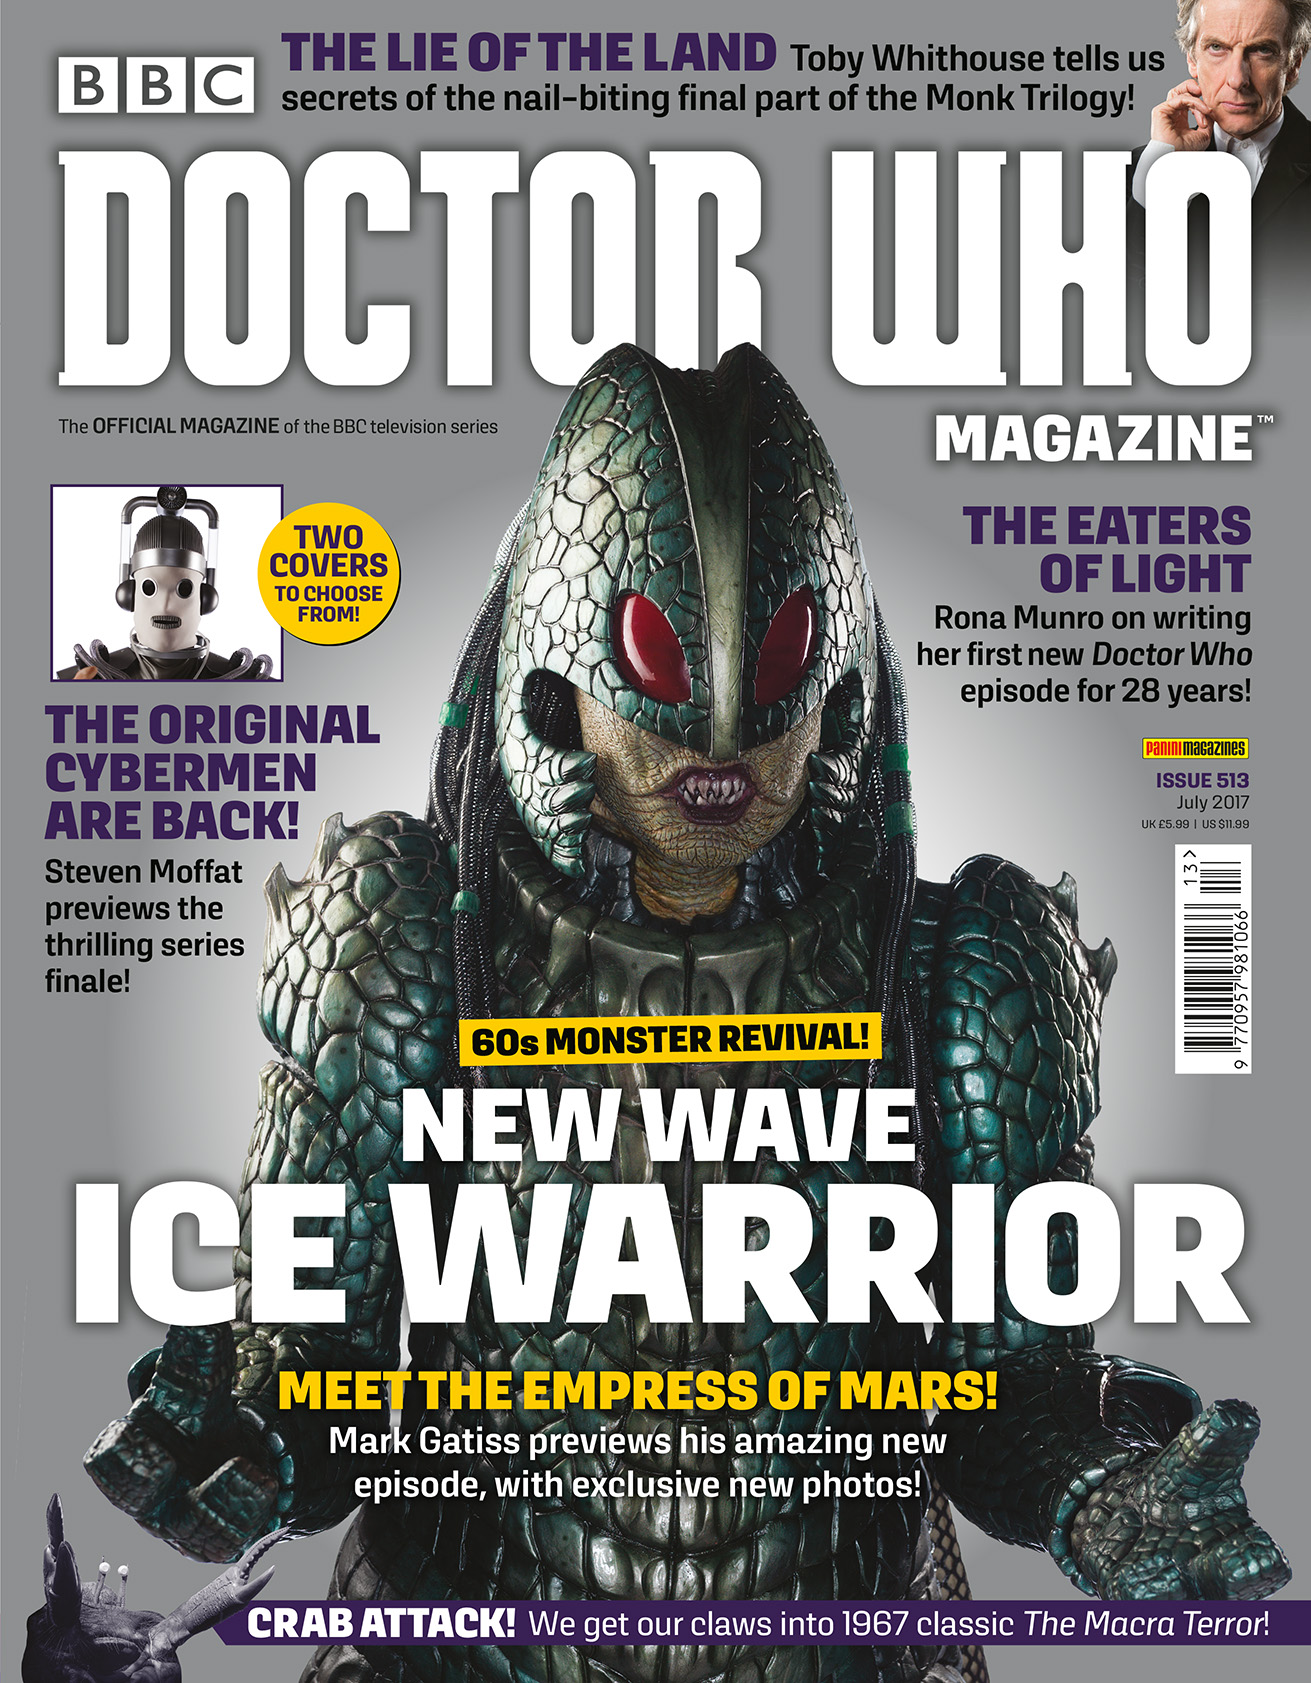 Doctor Who Magezine 513 (Ice Warrior variant) (Credit: DWM)